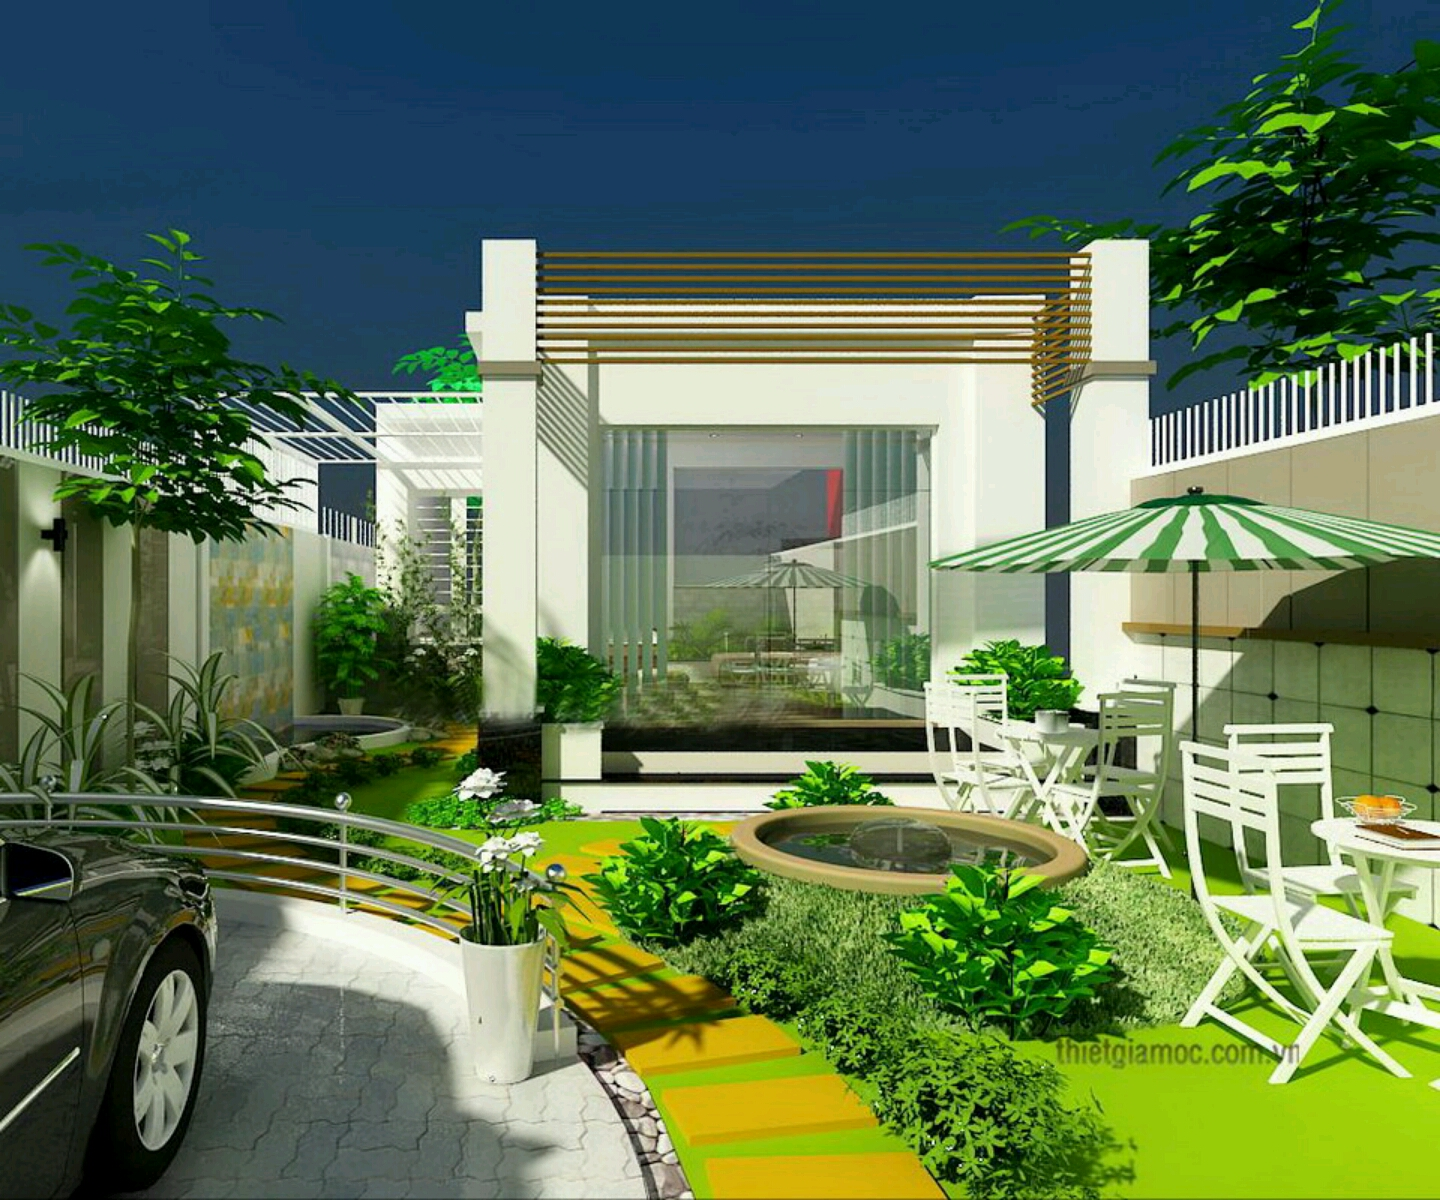 Modern homes beautiful garden designs ideas new home for House garden designs